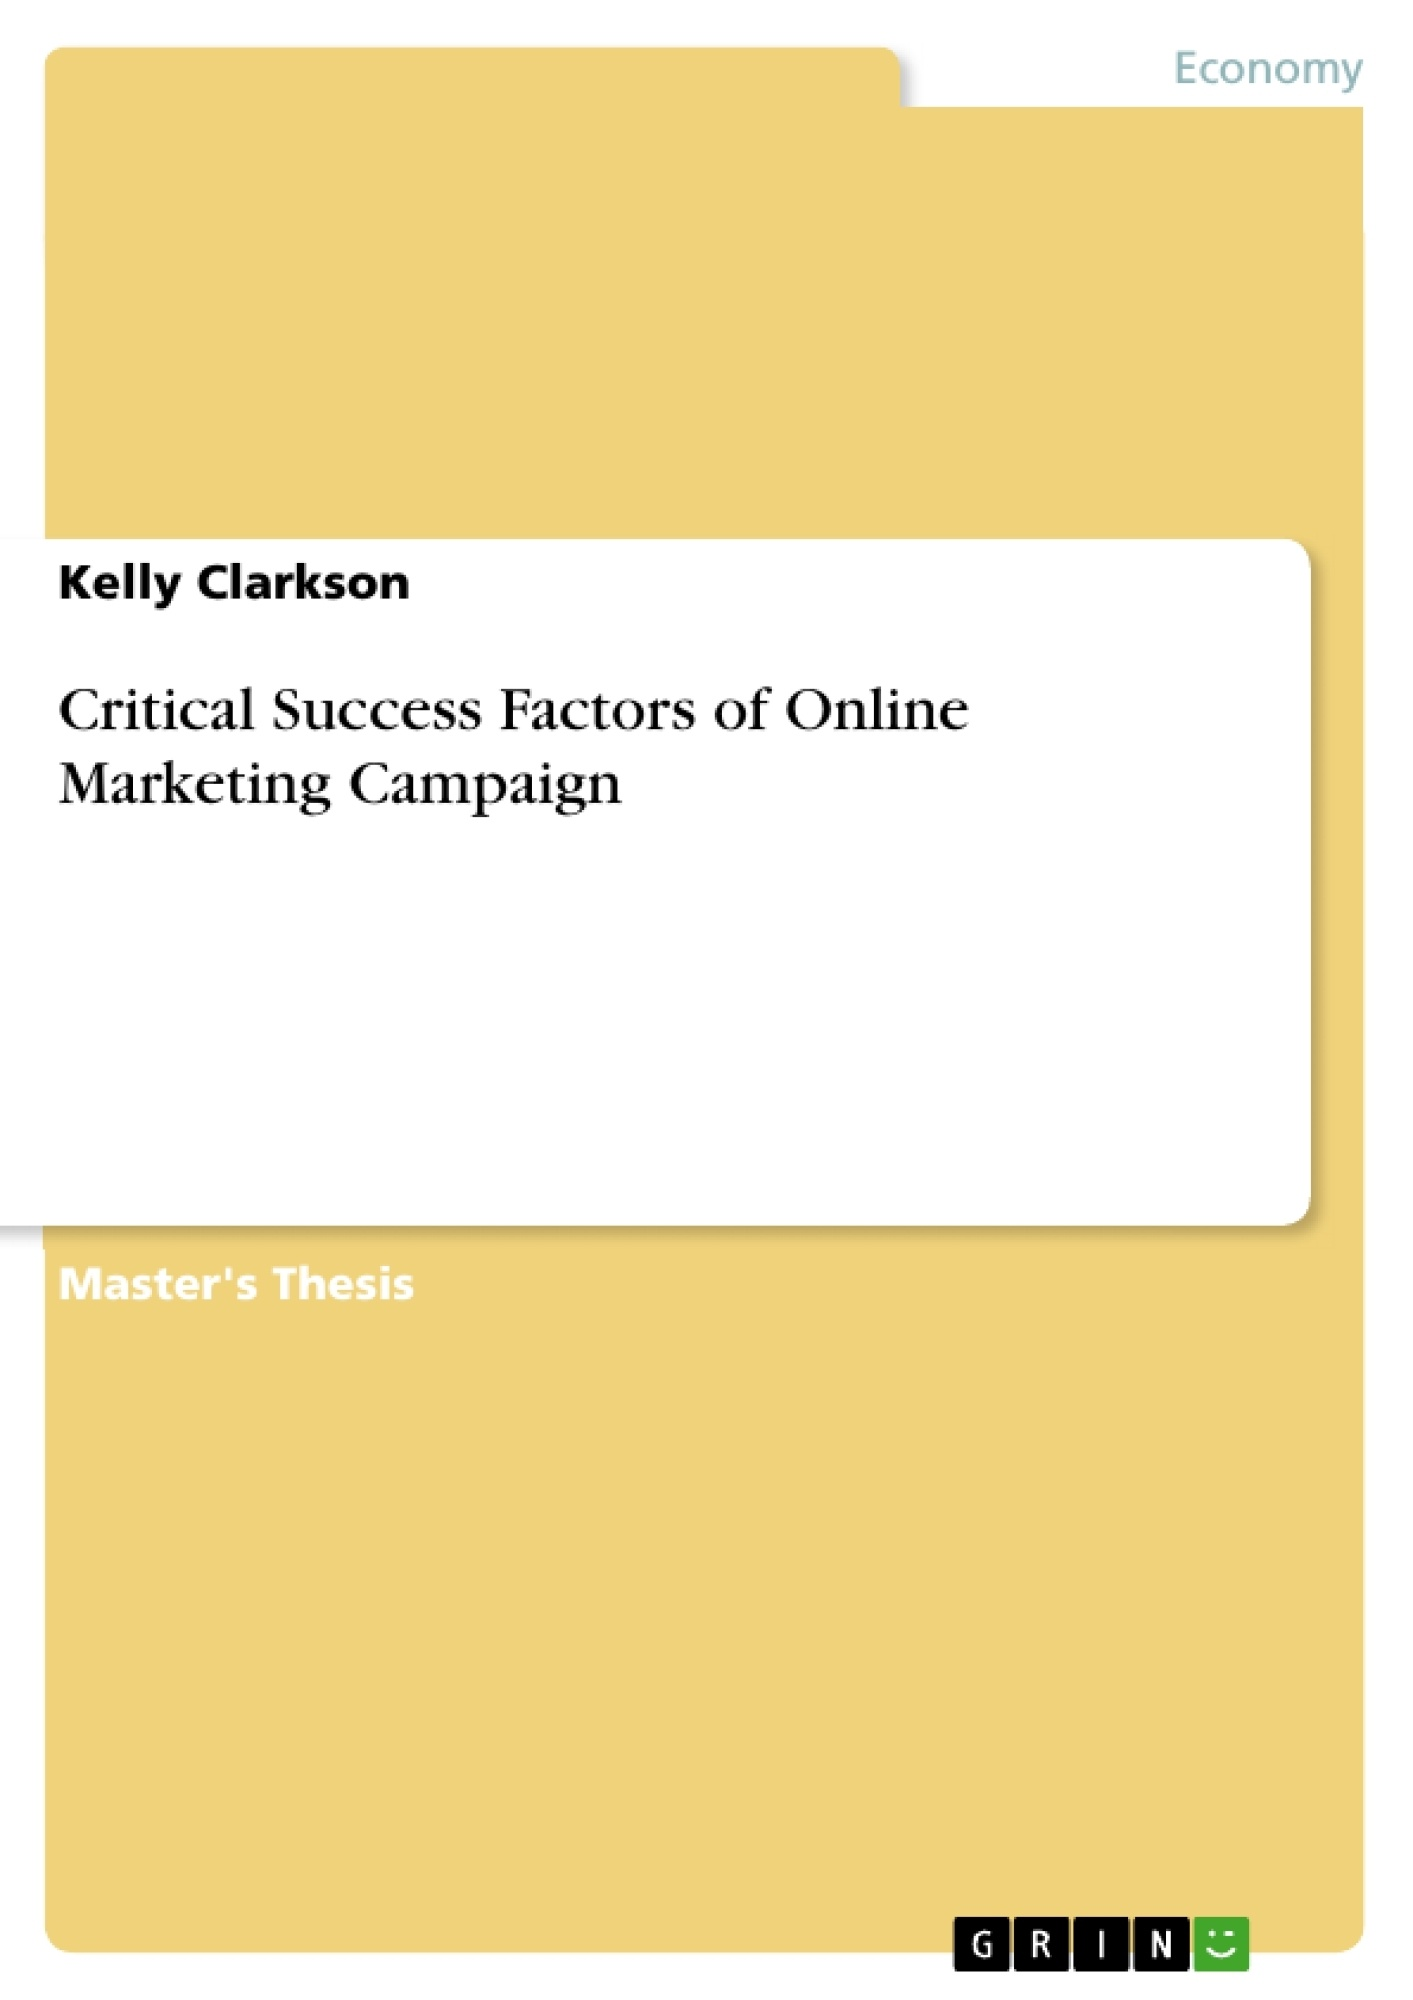 online marketing dissertation Online marketing is a useful and current area of market research some suggestions to base your dissertation on online marketing are as below.